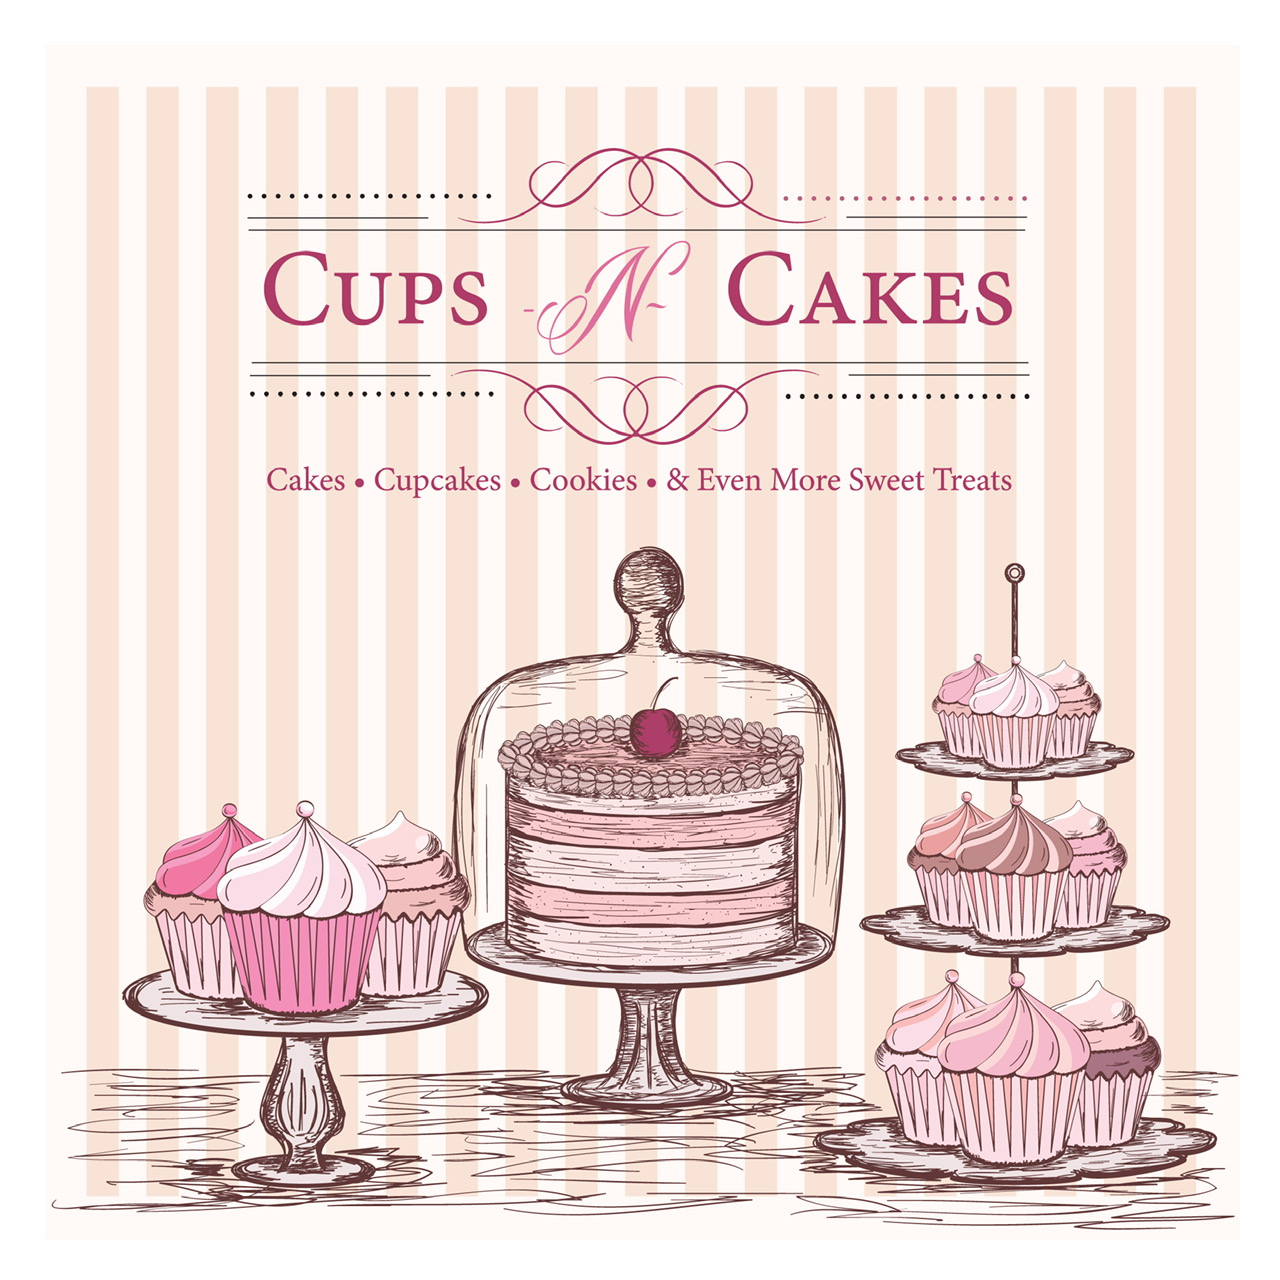 Cups-N-Cakes Bakery